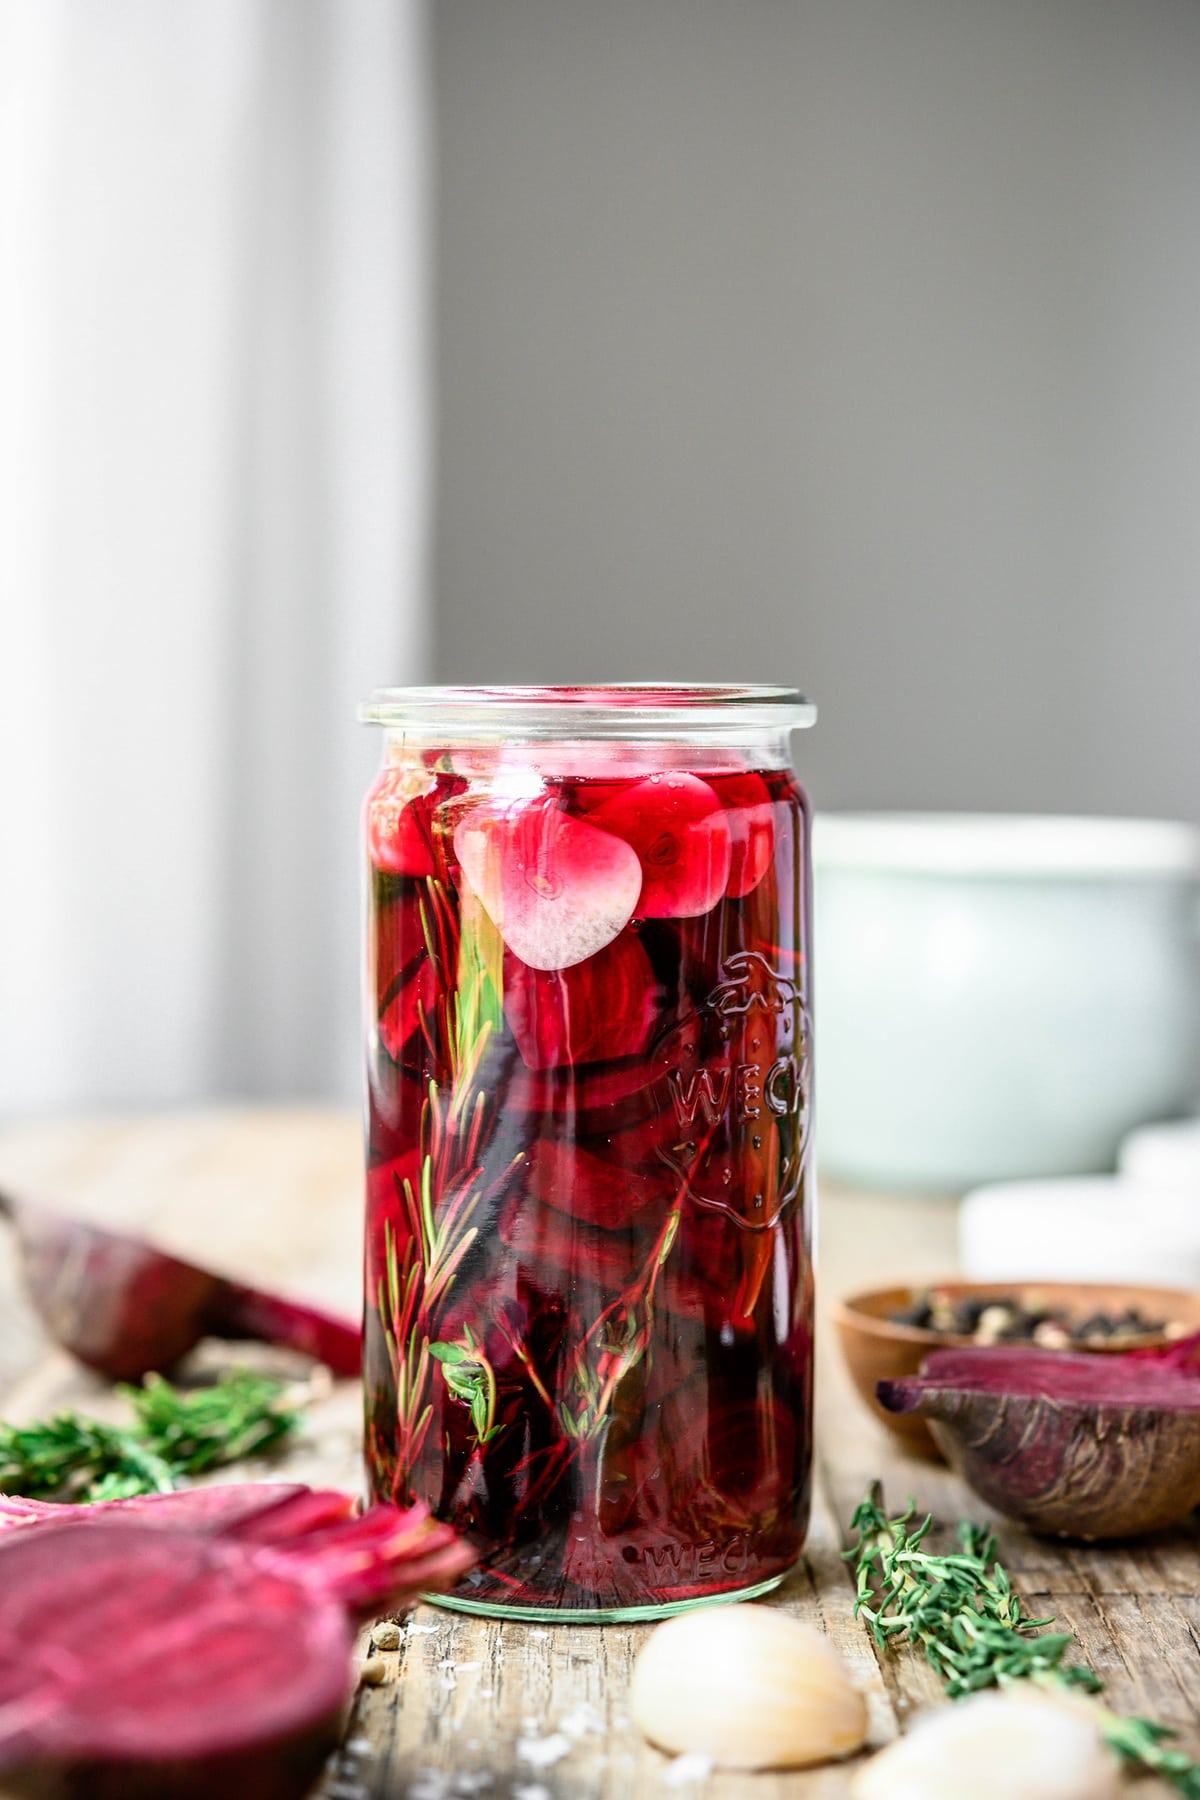 Beet pickles in a quart jar